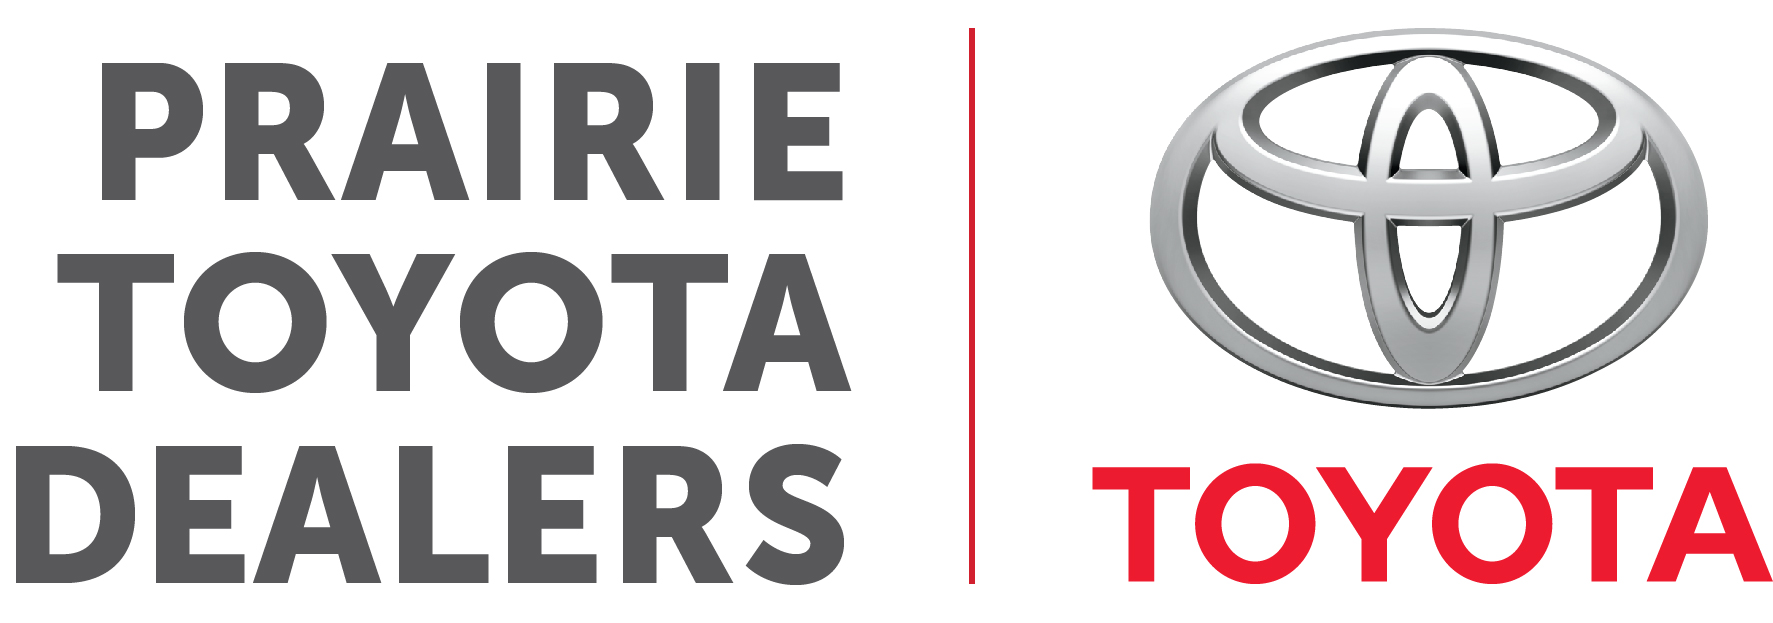 Prarie Toyota Dealers